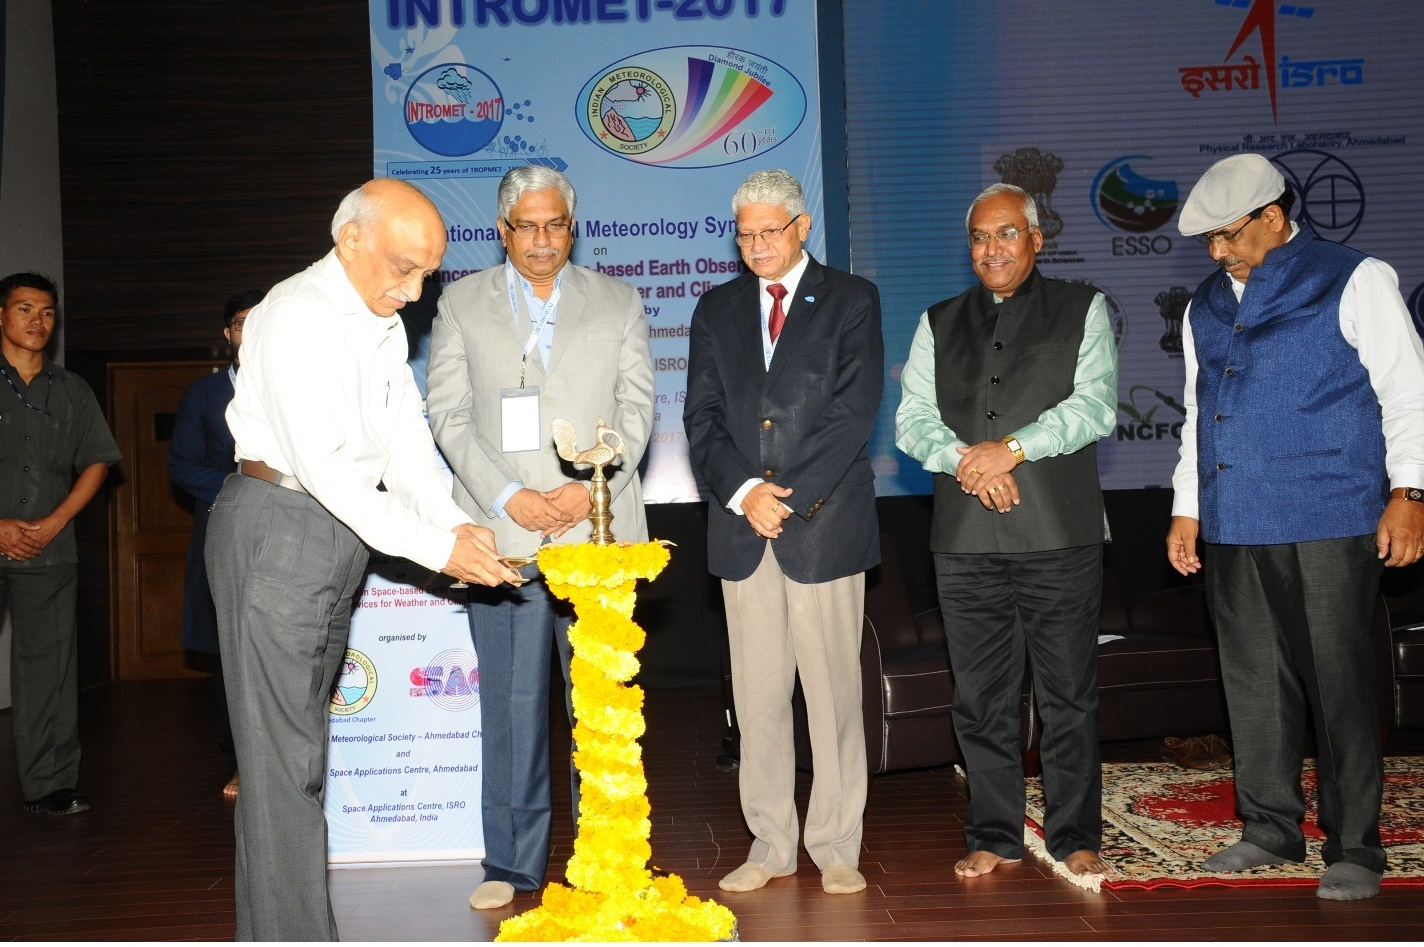 Chief Guest Shri A S Kiran Kumar, Chairman, ISRO and Secretary, DOS, GoI lighting the Lamp during the Inaugural Function